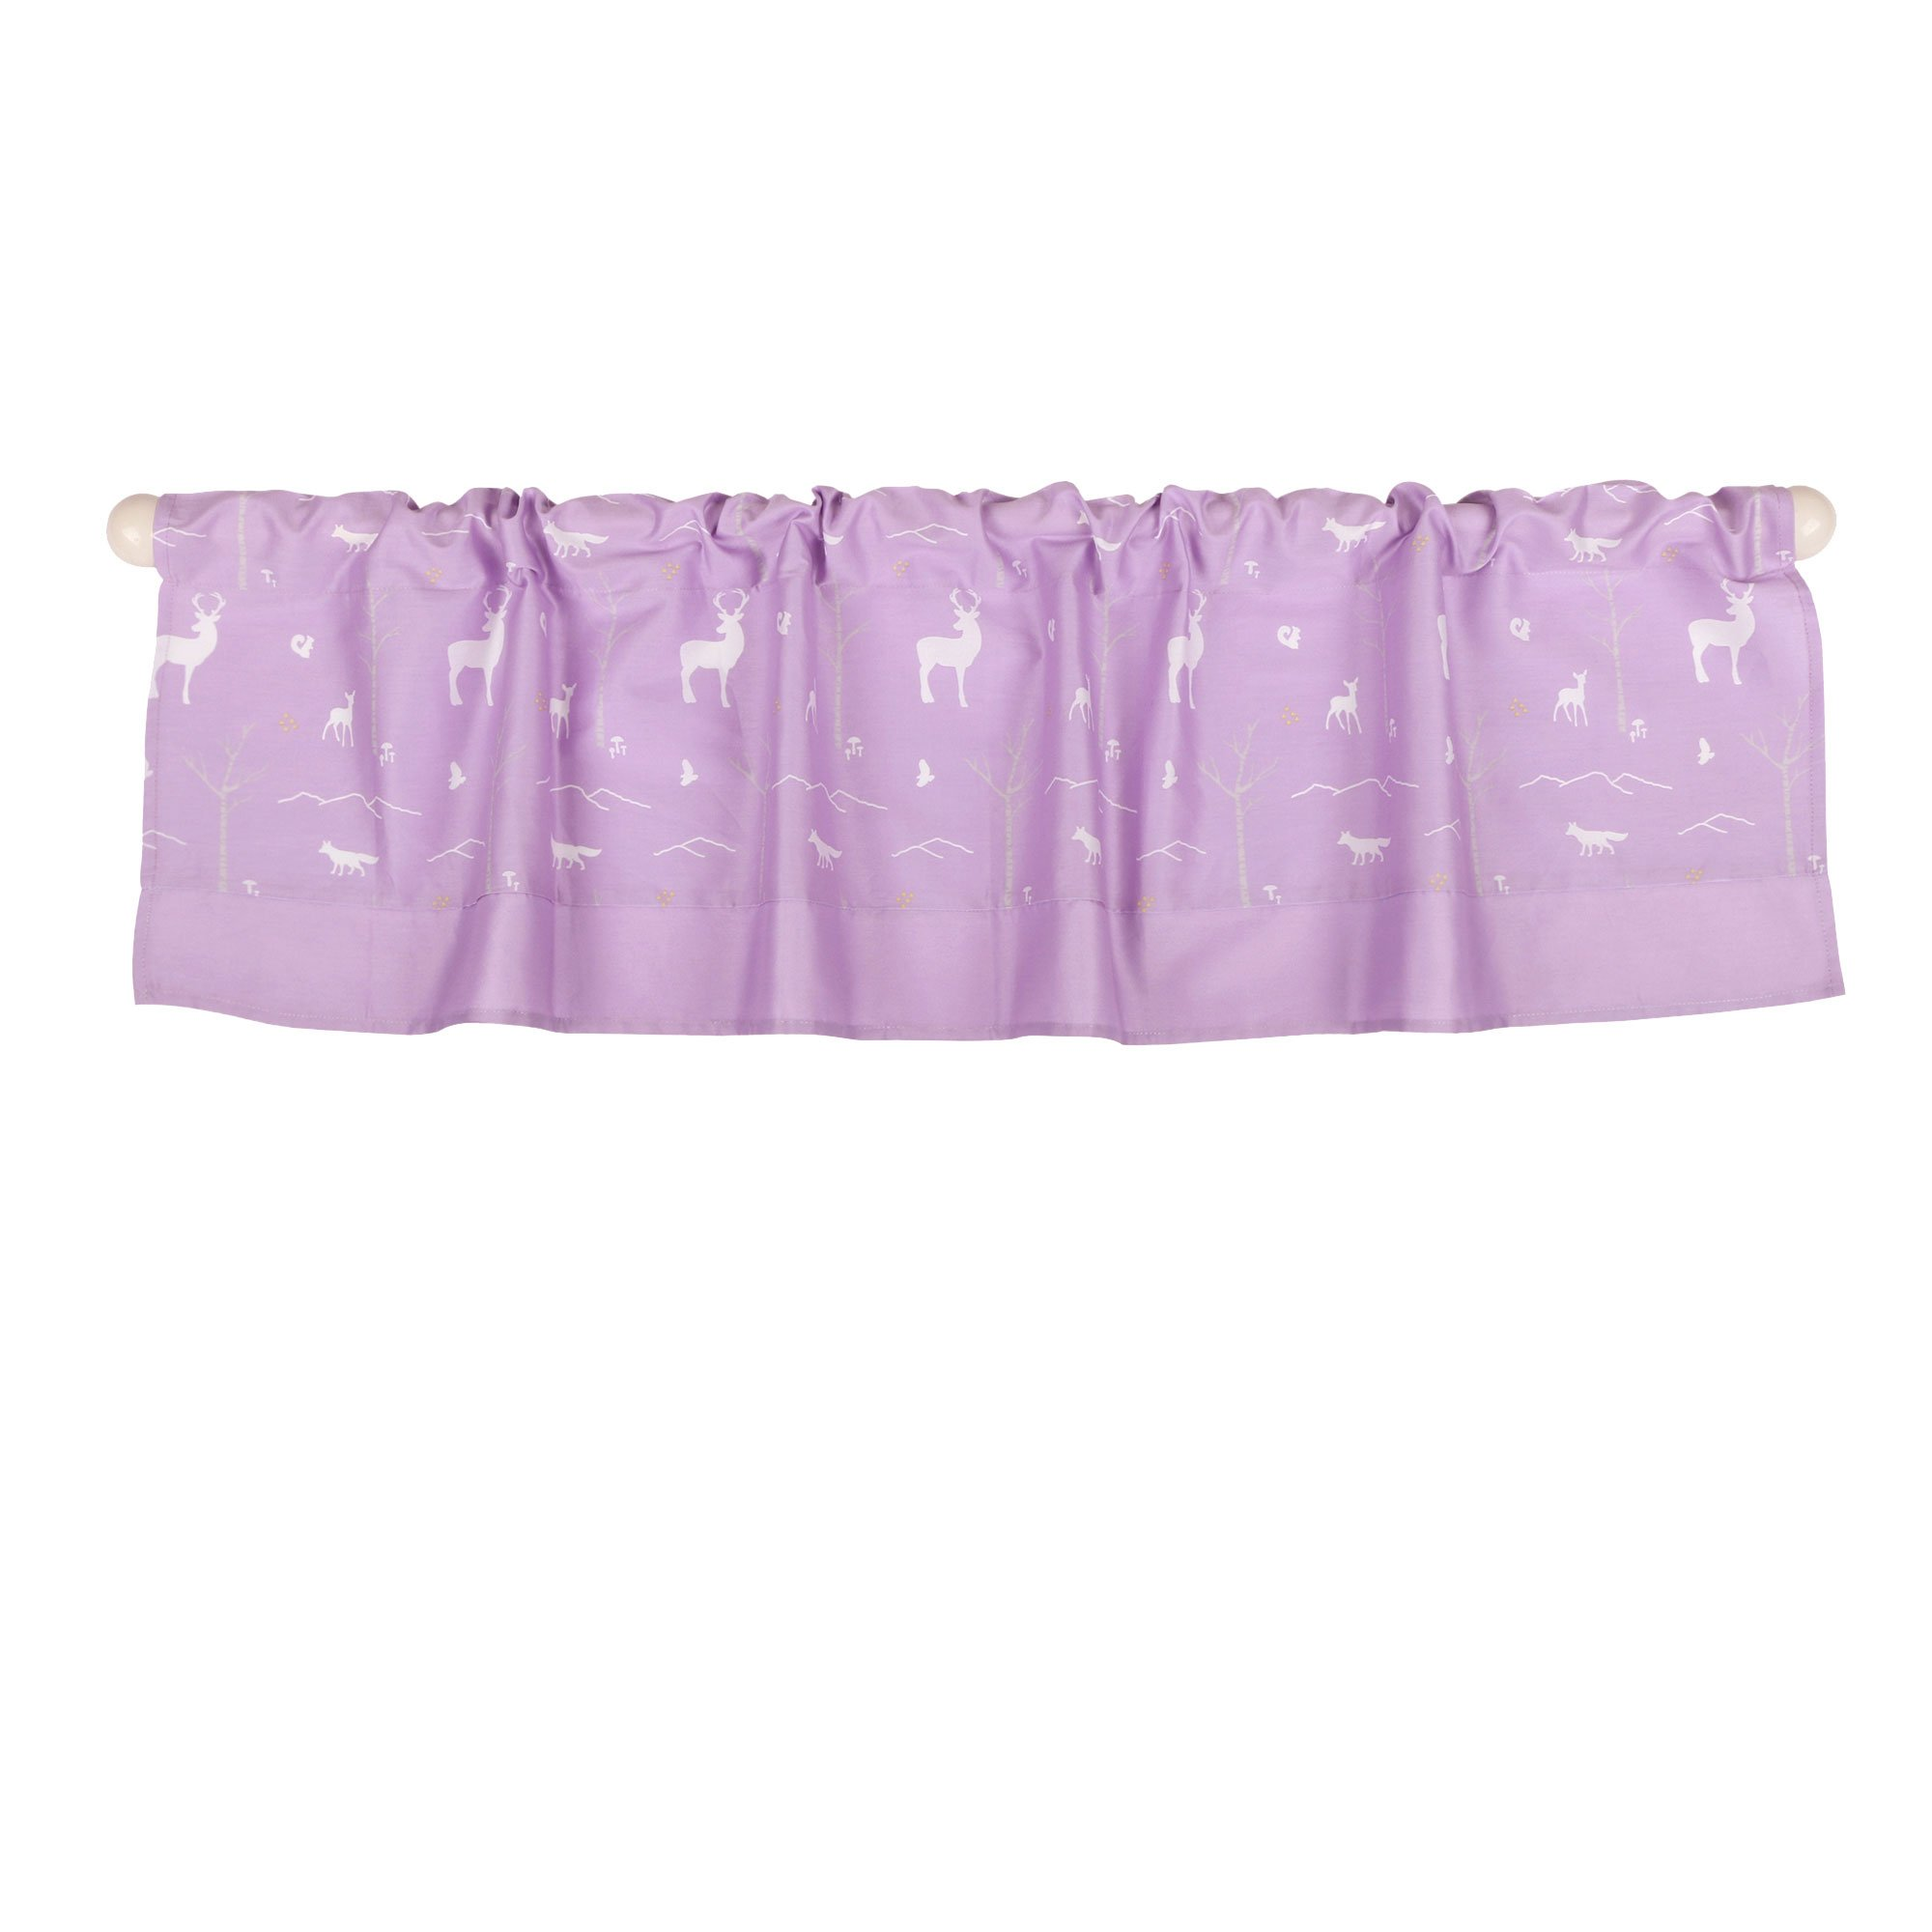 treatment gypsy panel valance p curtain ruffled purple window valances voile sheer